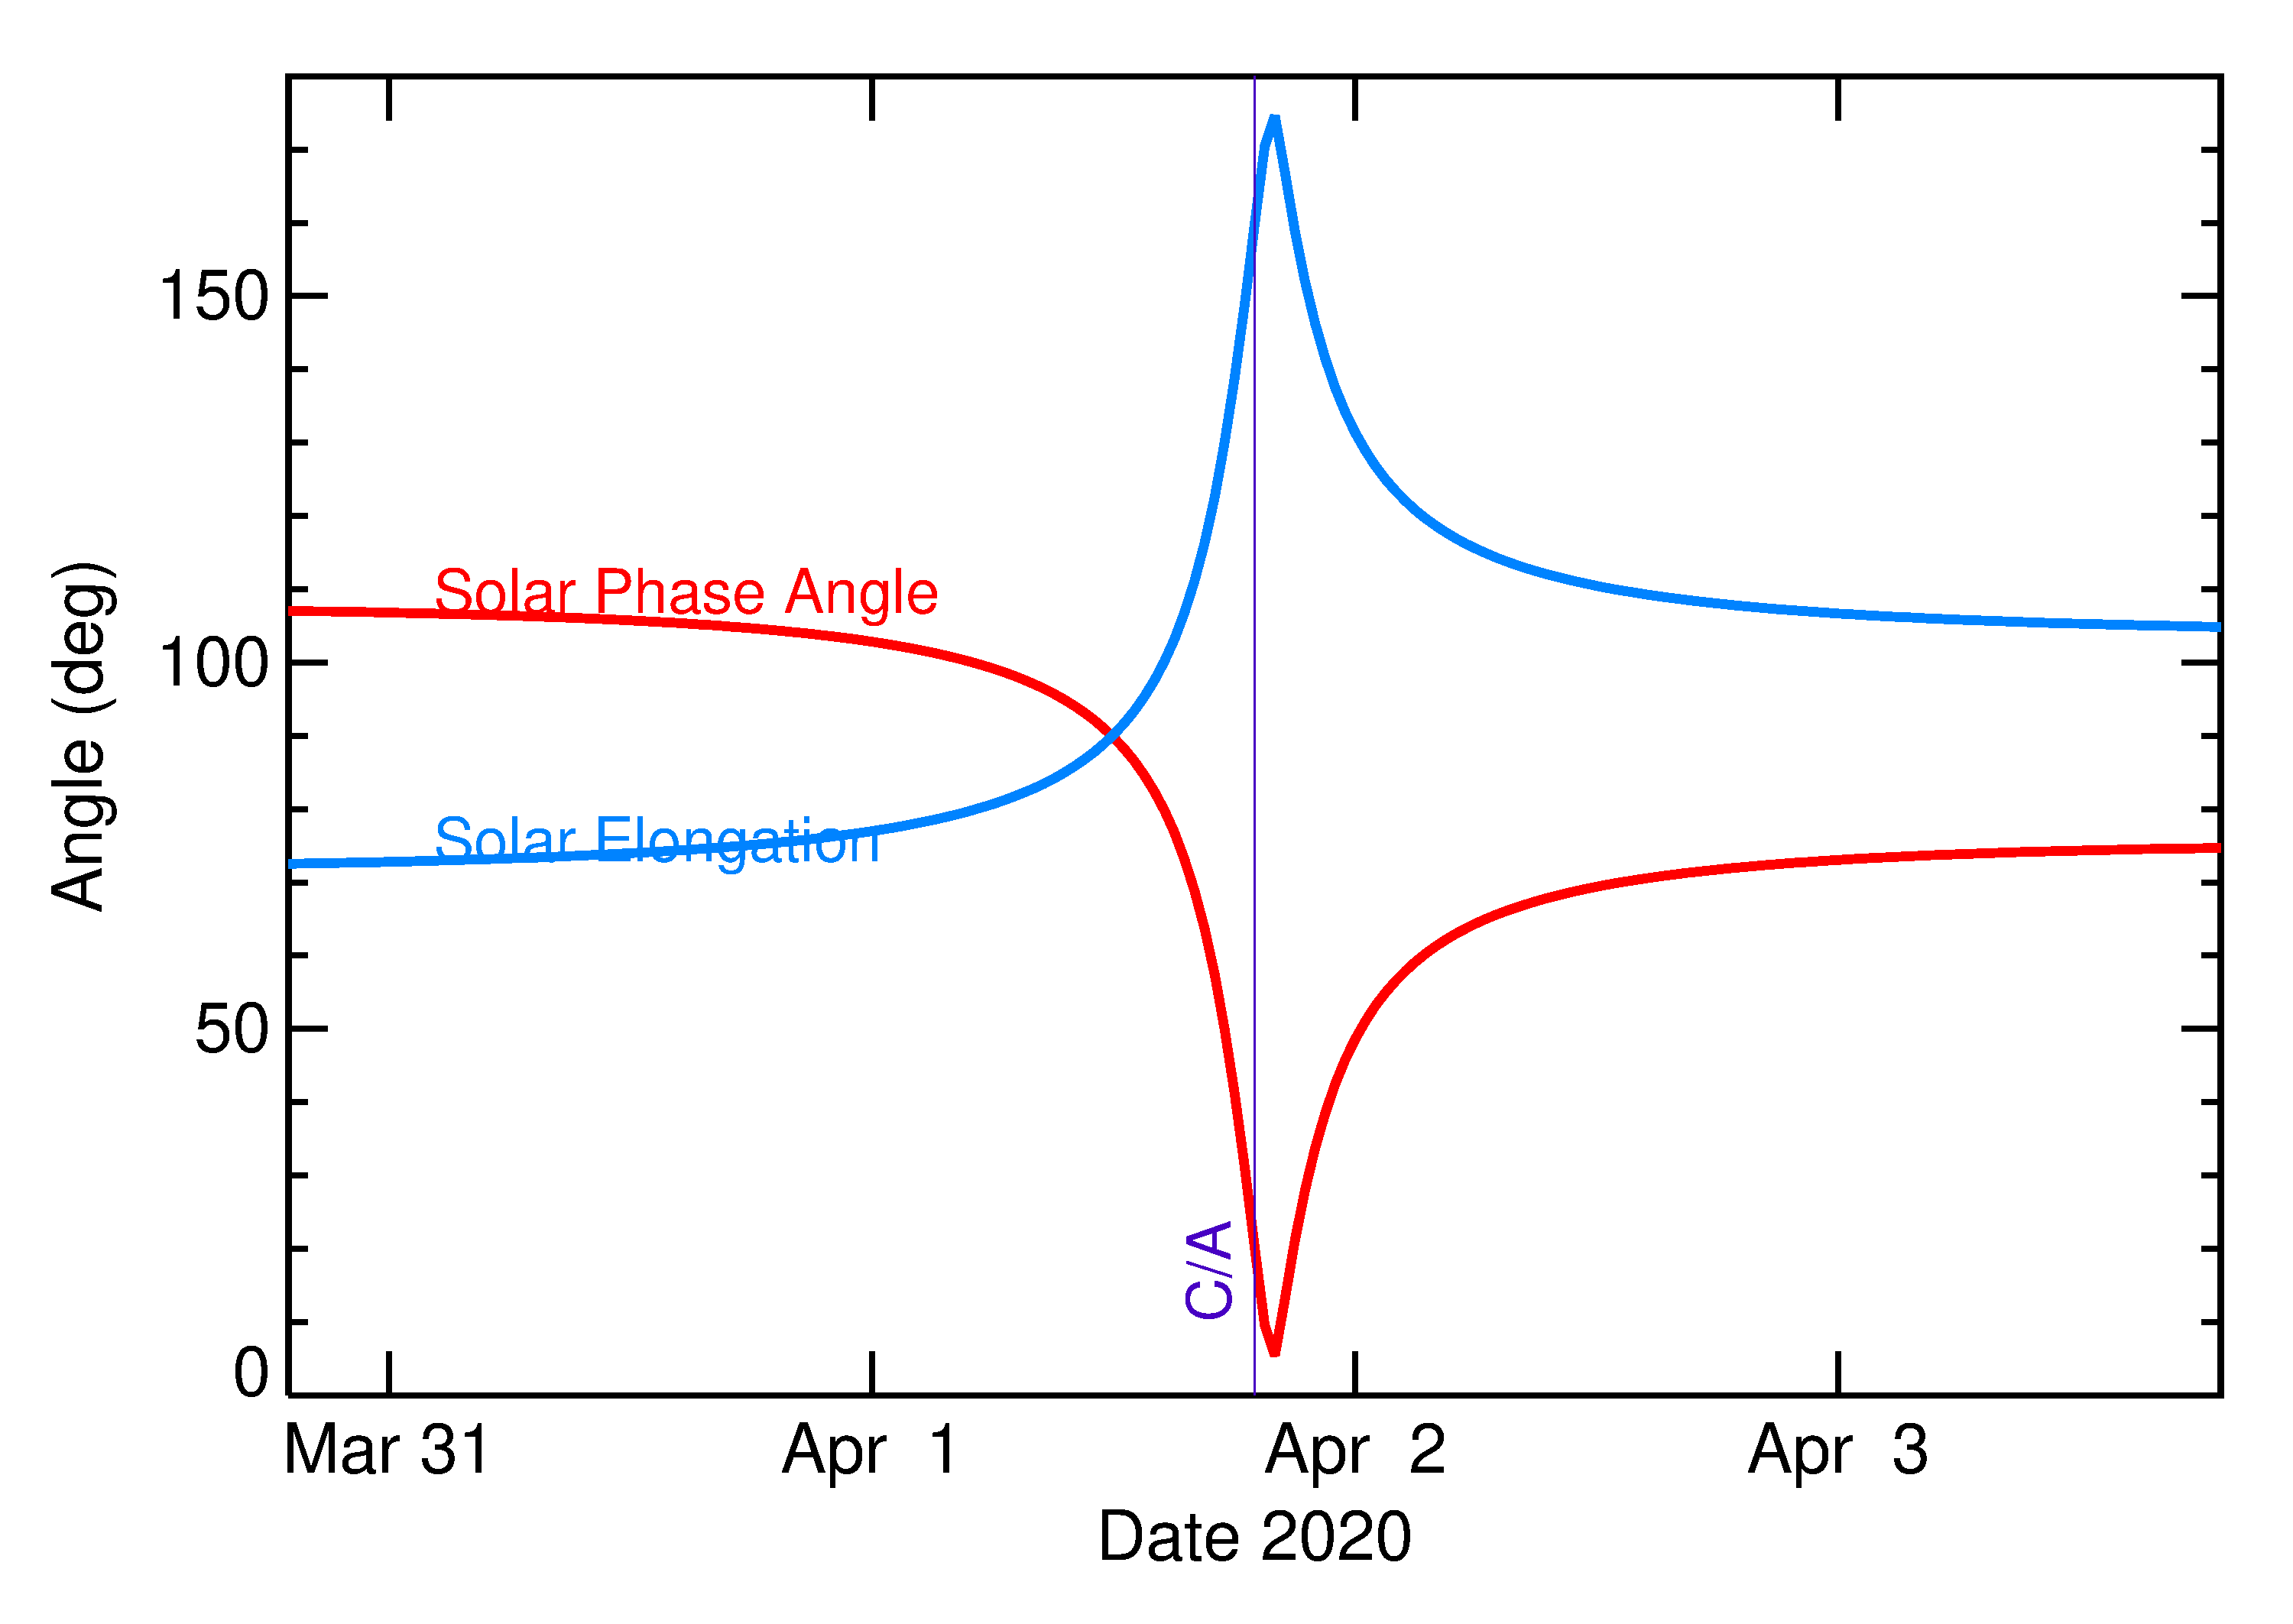 Solar Elongation and Solar Phase Angle of 2020 GO1 in the days around closest approach